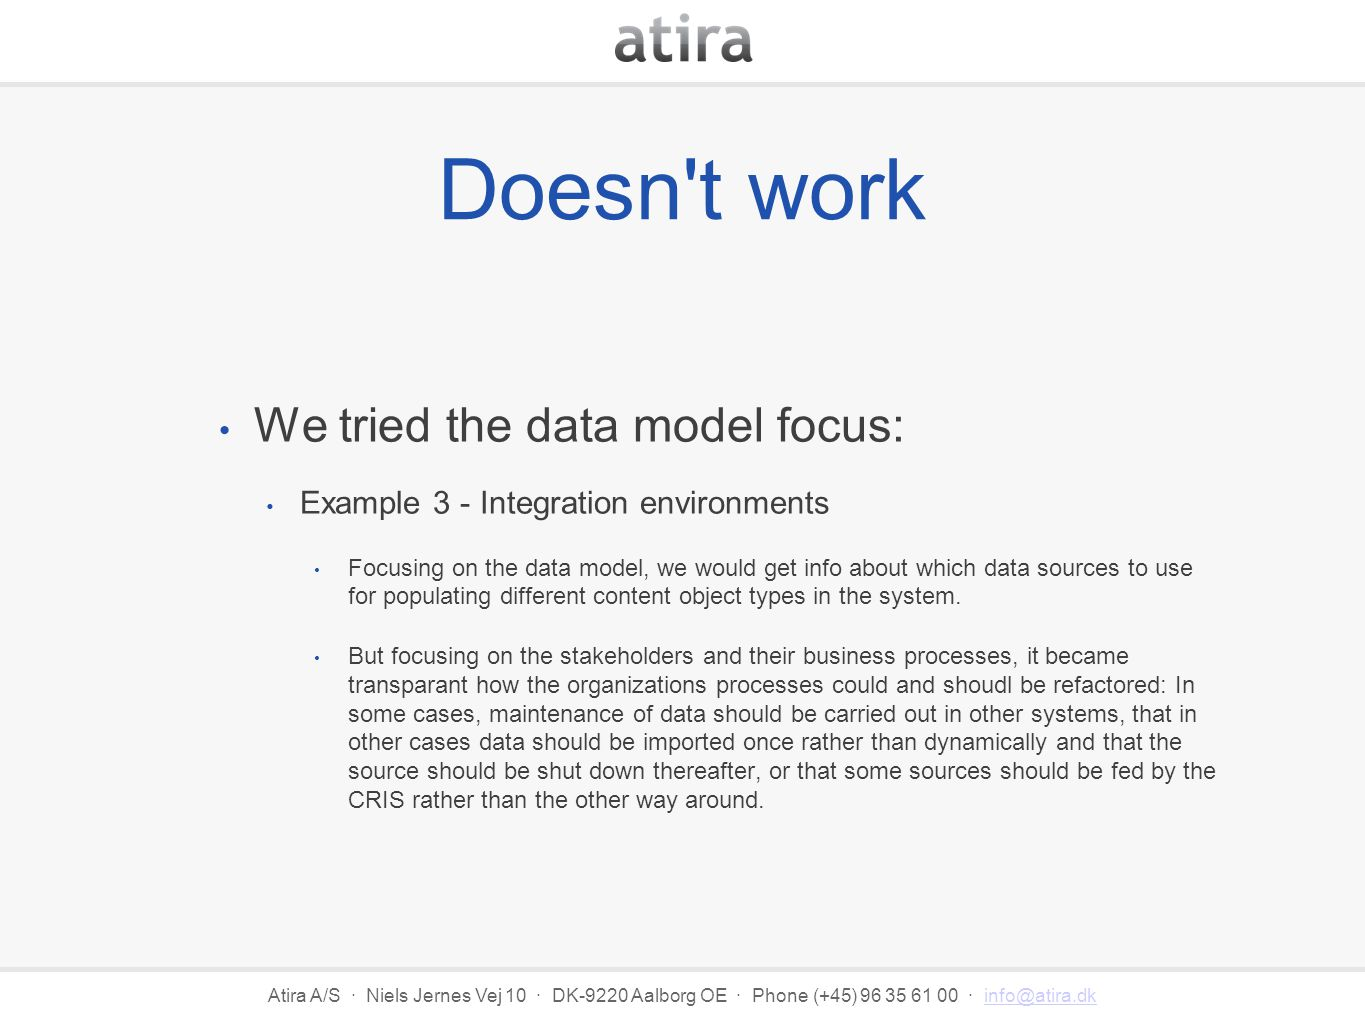 Atira A/S · Niels Jernes Vej 10 · DK-9220 Aalborg OE · Phone (+45) 96 35 61 00 · info@atira.dkinfo@atira.dk Doesn t work We tried the data model focus: Example 3 - Integration environments Focusing on the data model, we would get info about which data sources to use for populating different content object types in the system.